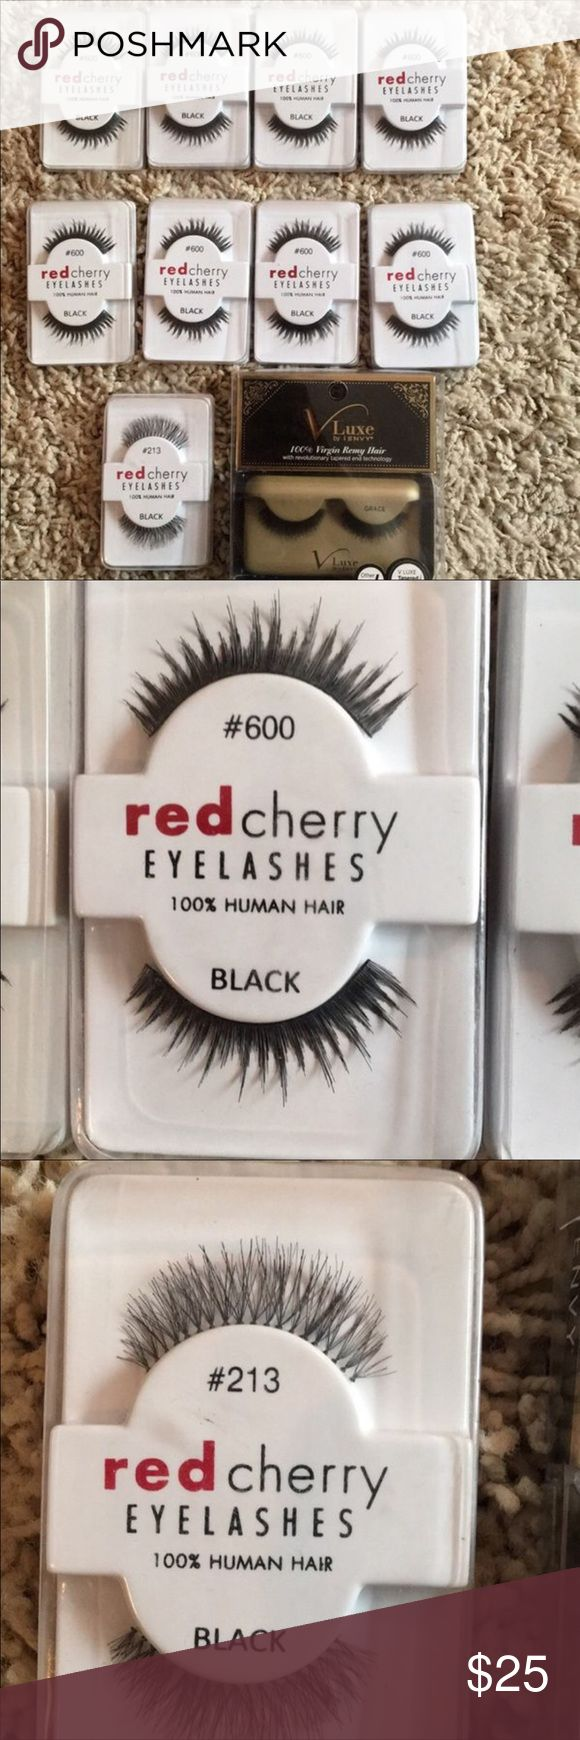 Red Cherry & V Luxe by I Envy Lashes I have  8 pairs of Red Cherry #600  1 pair of Red Cherry #213 1 pair of V Luxe by I Envy Grace (original price $4.99) 100% virgin remy hair with tapered ends.  All lashes are 100% human hair. Brand new never been used. Original price for Red Cherry lashes $2.99. Red Cherry & V Luxe by I Envy Makeup